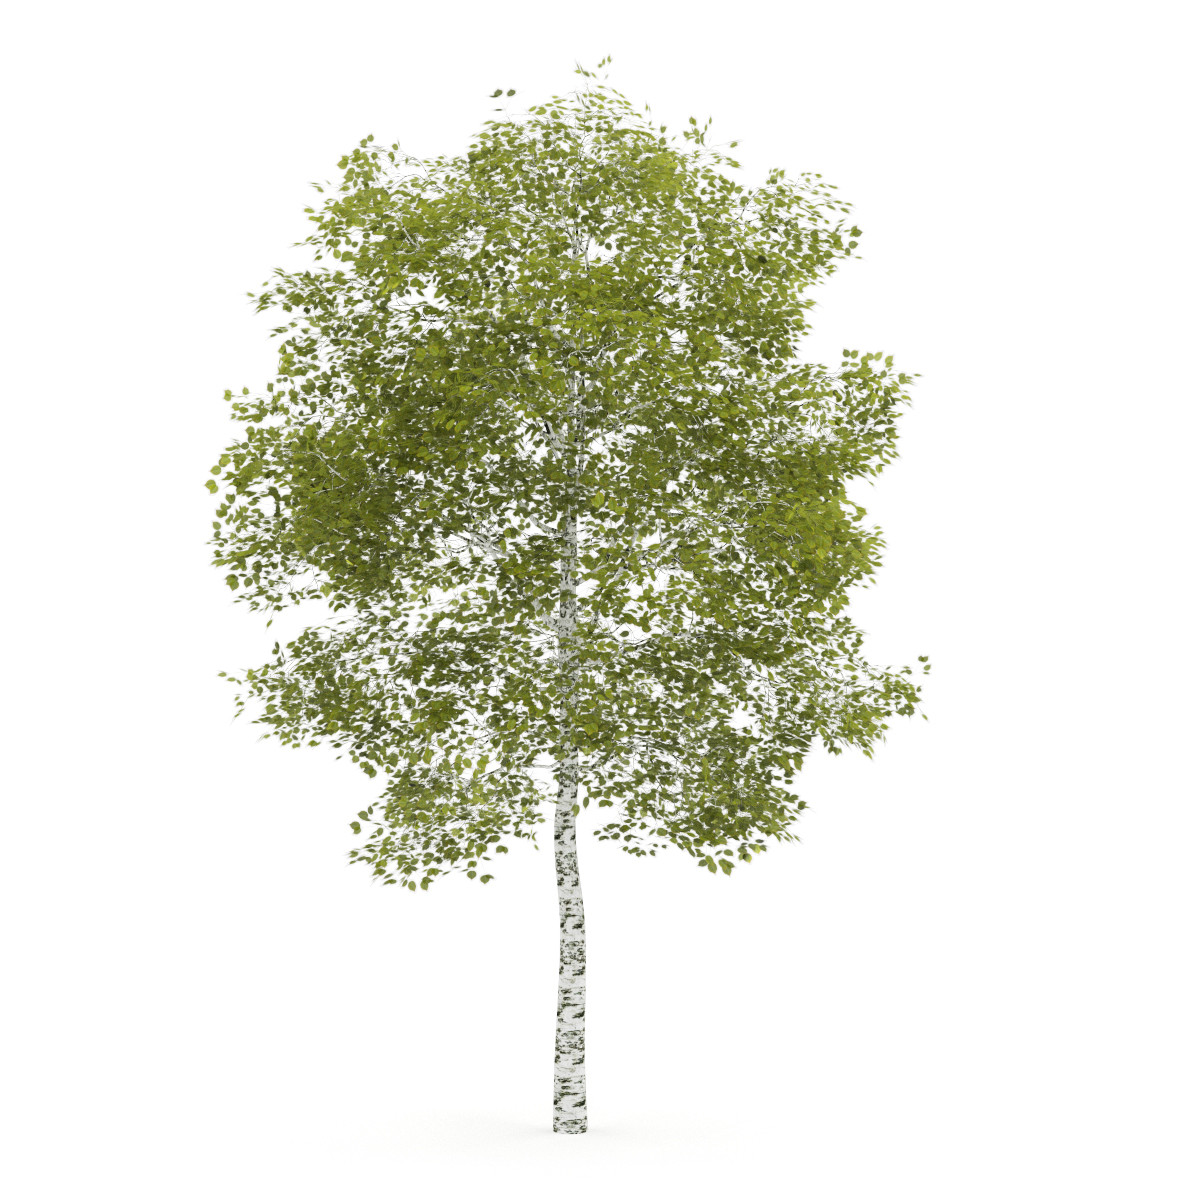 Birch-Tree 4.5m - CGAxis 3D Models.